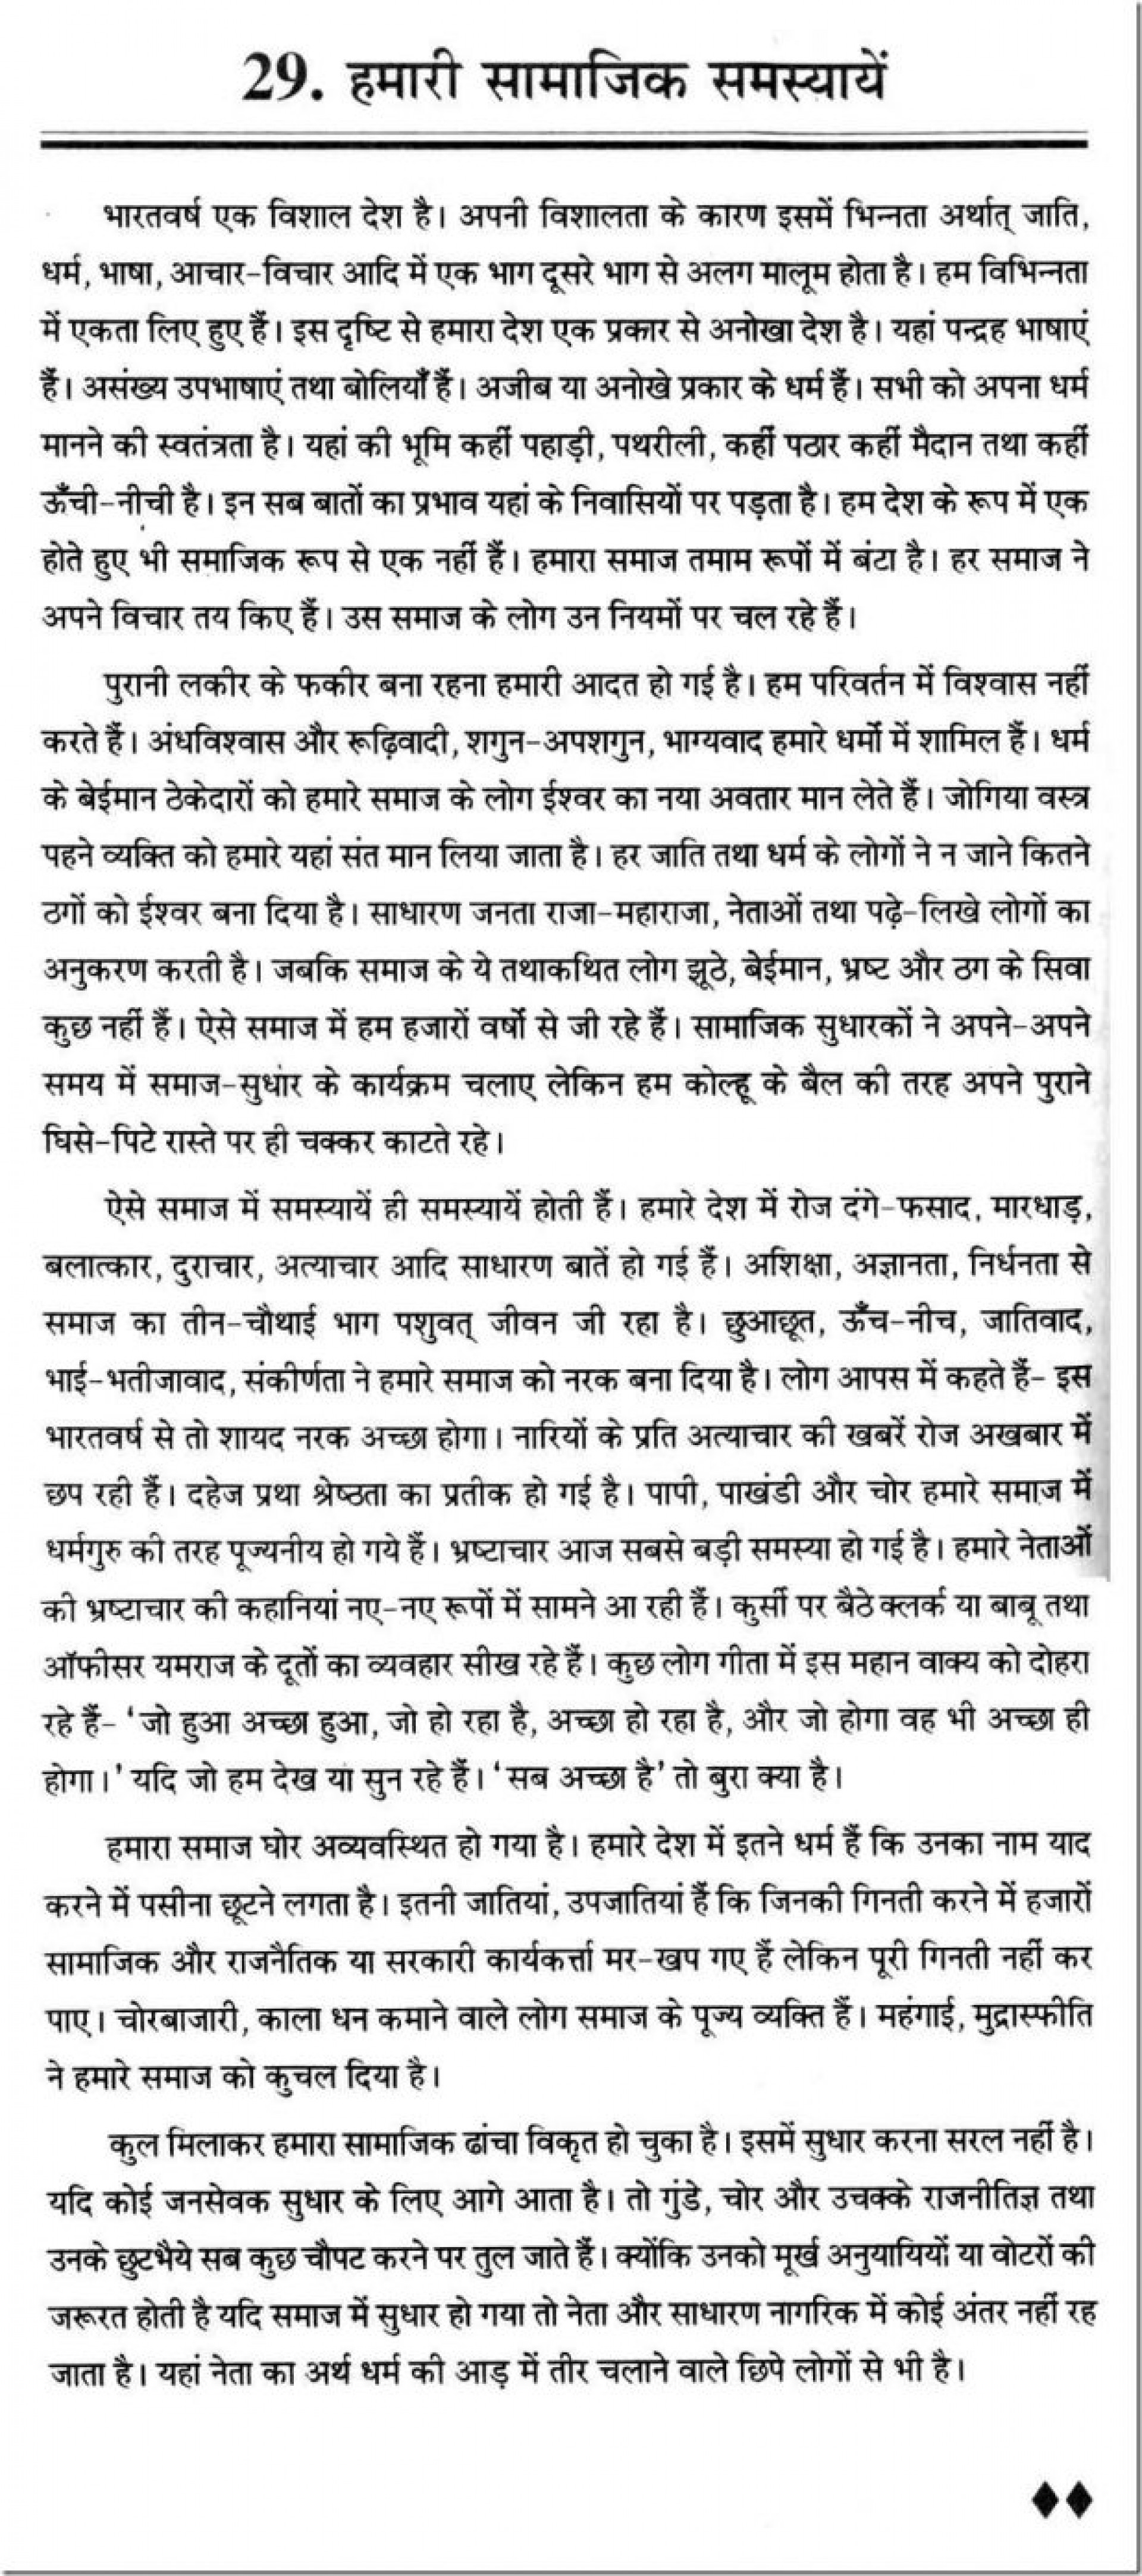 013 Social Issues Essay Example Essays Thumb On In Education America Security Free Topics And Environment Argumentative Pakistan Photo Pdf India Satirical Hindi To Write Outstanding 1920